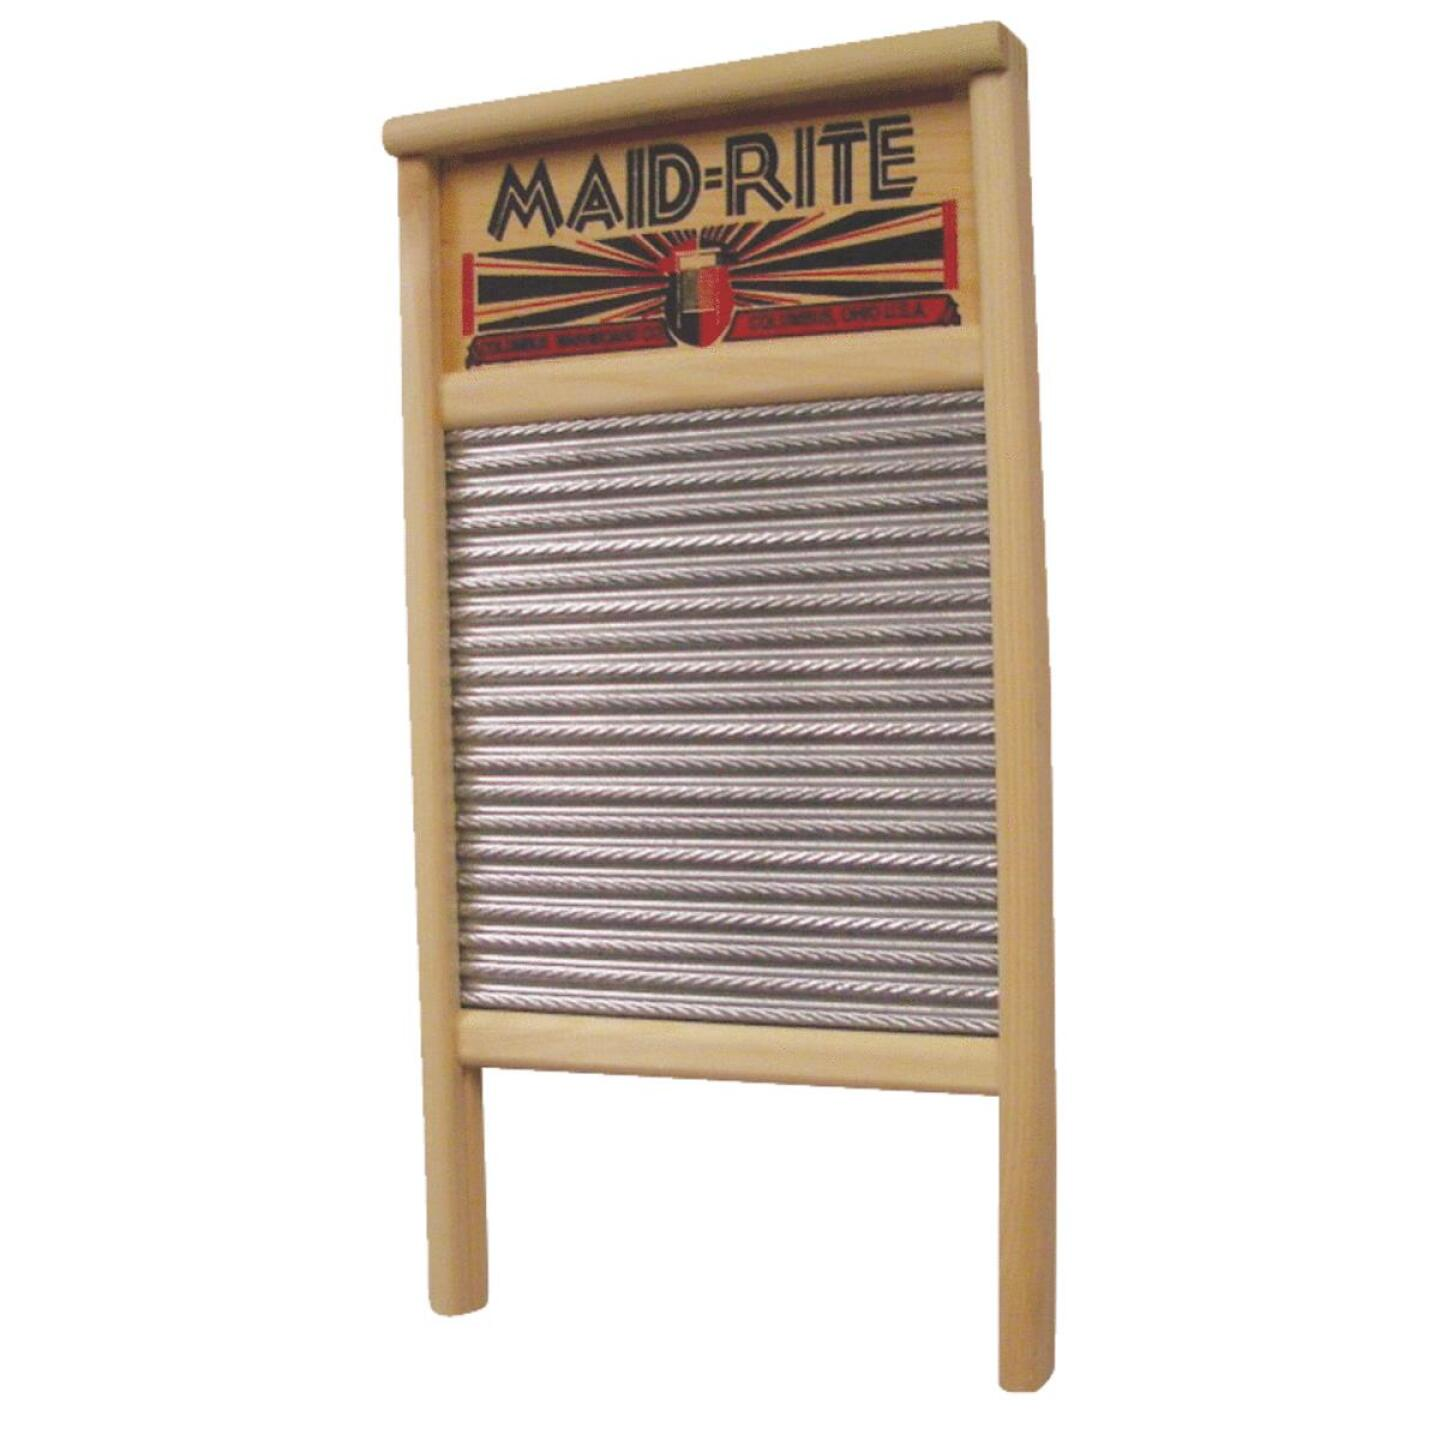 Columbus Maid-Rite 12-7/16 In. x 23-3/4 In. Family Size Washboard Image 1